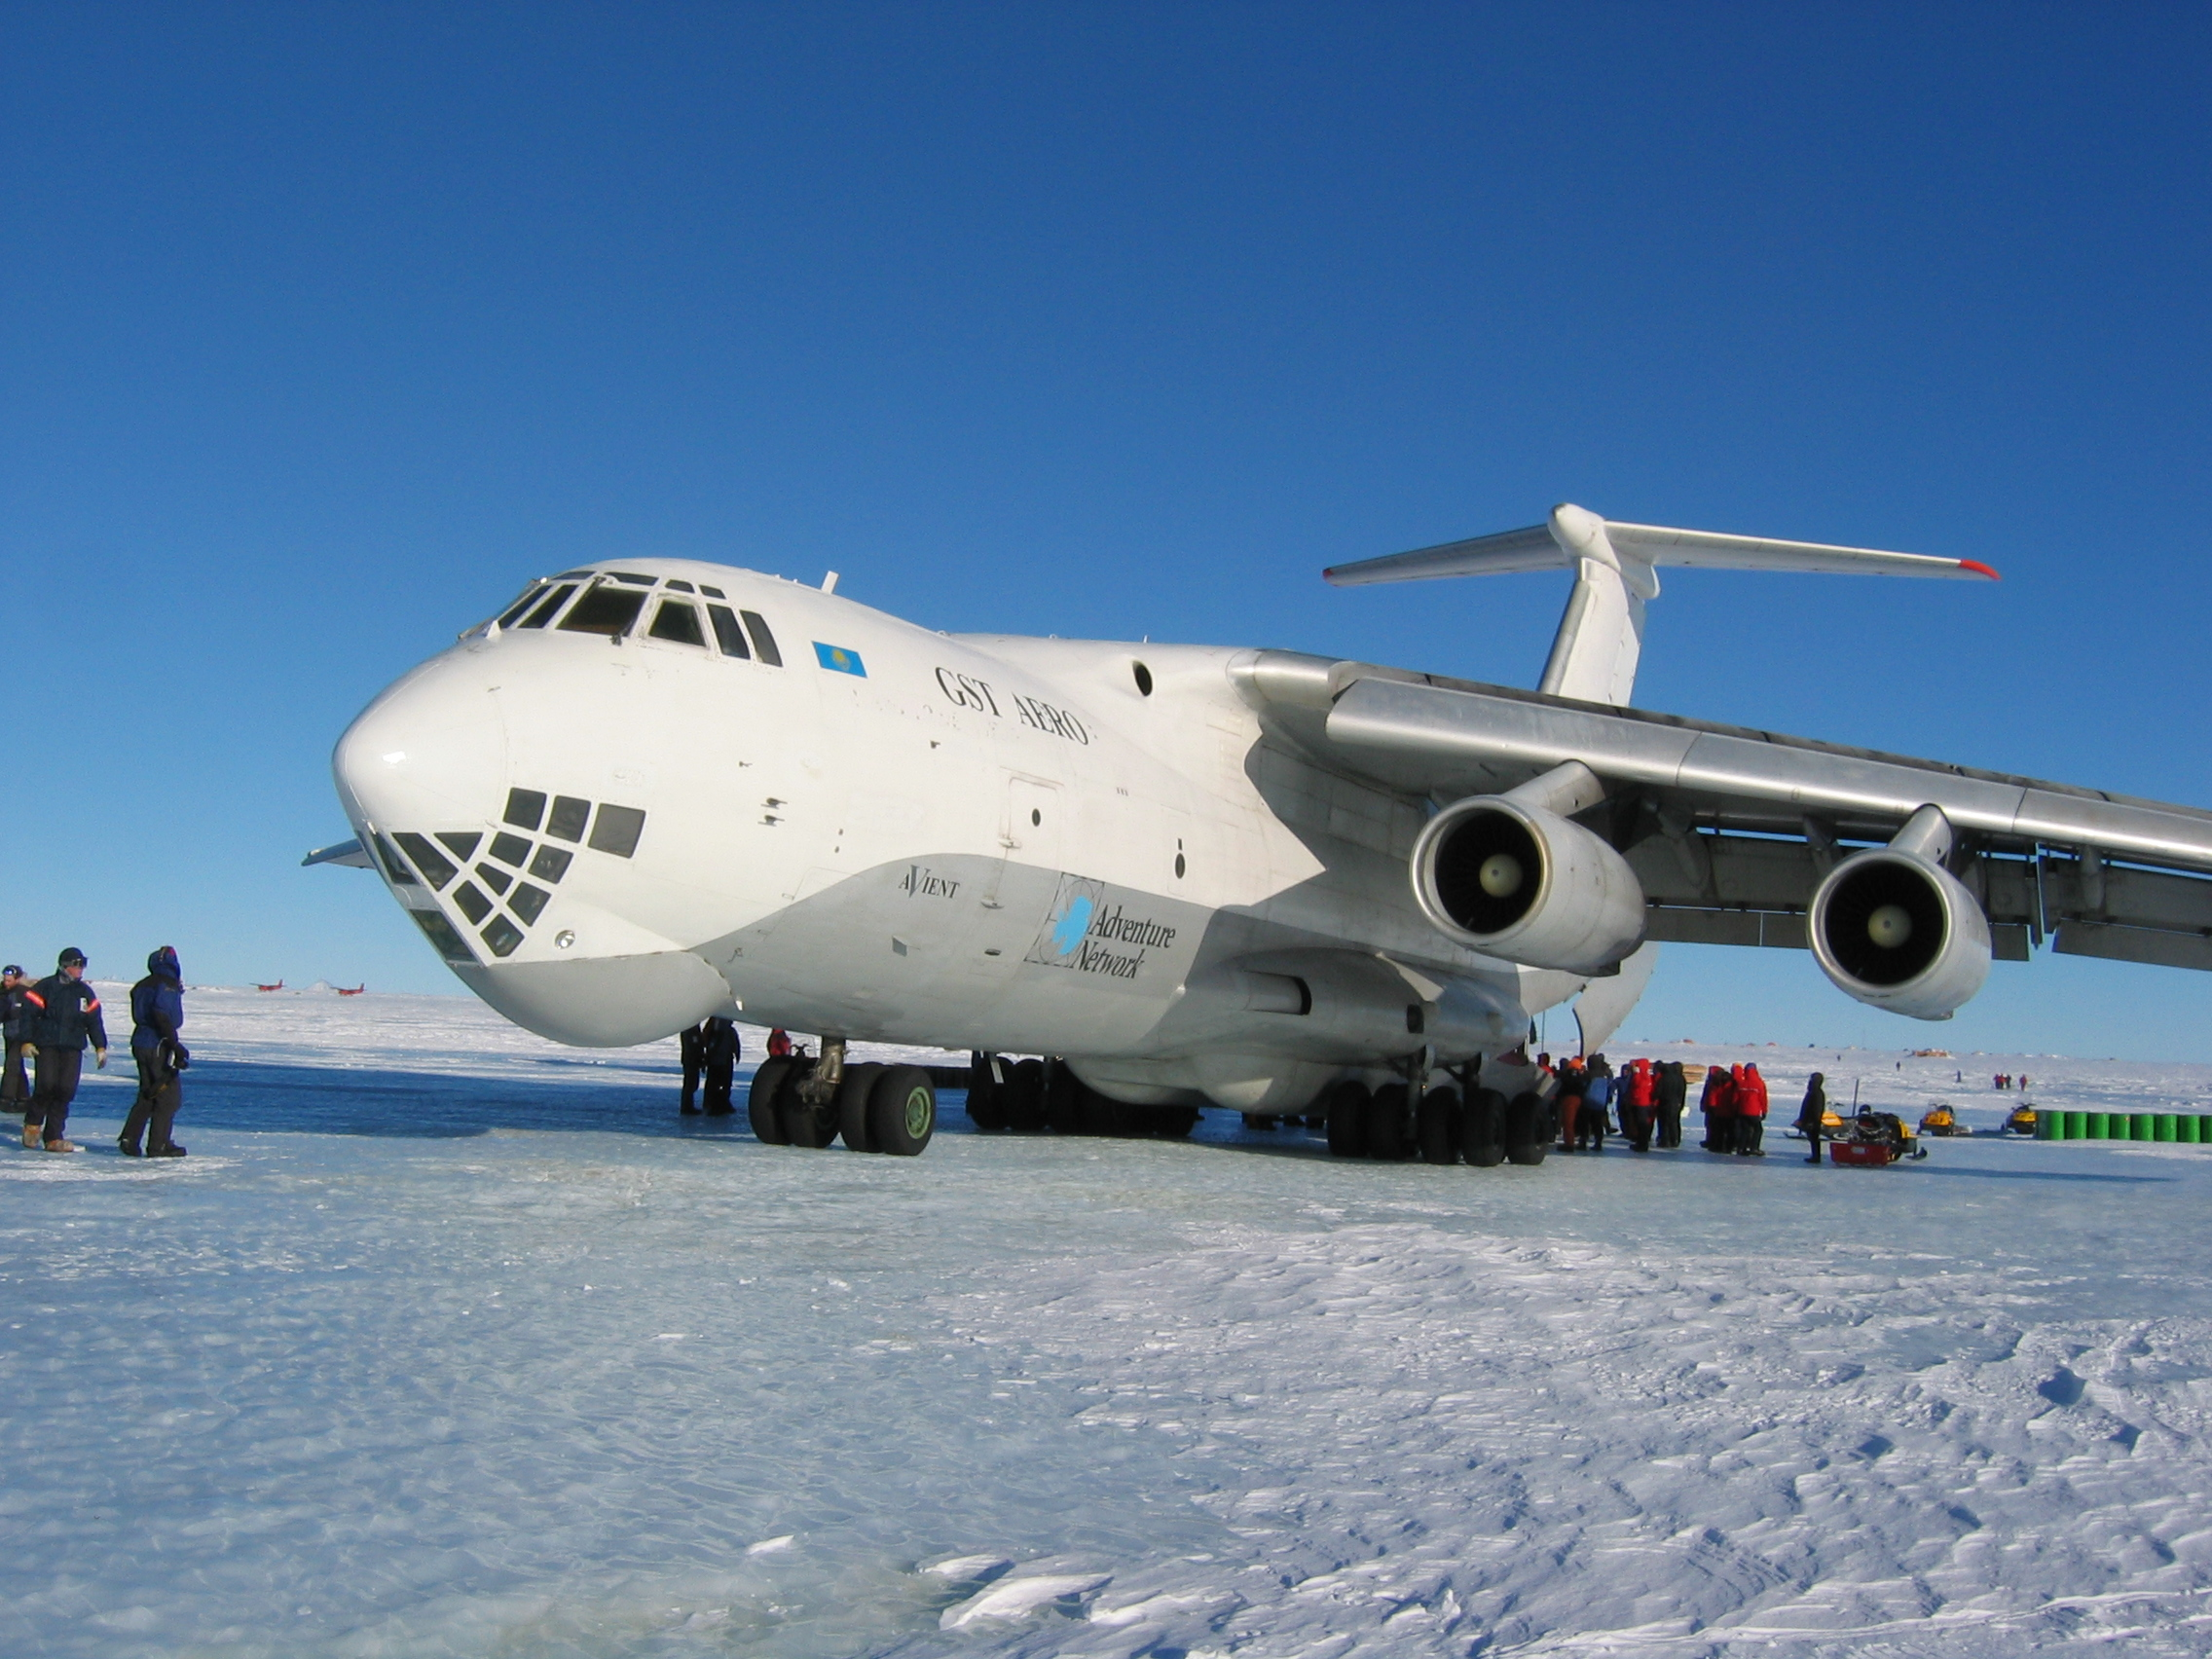 On the IL 76 soon